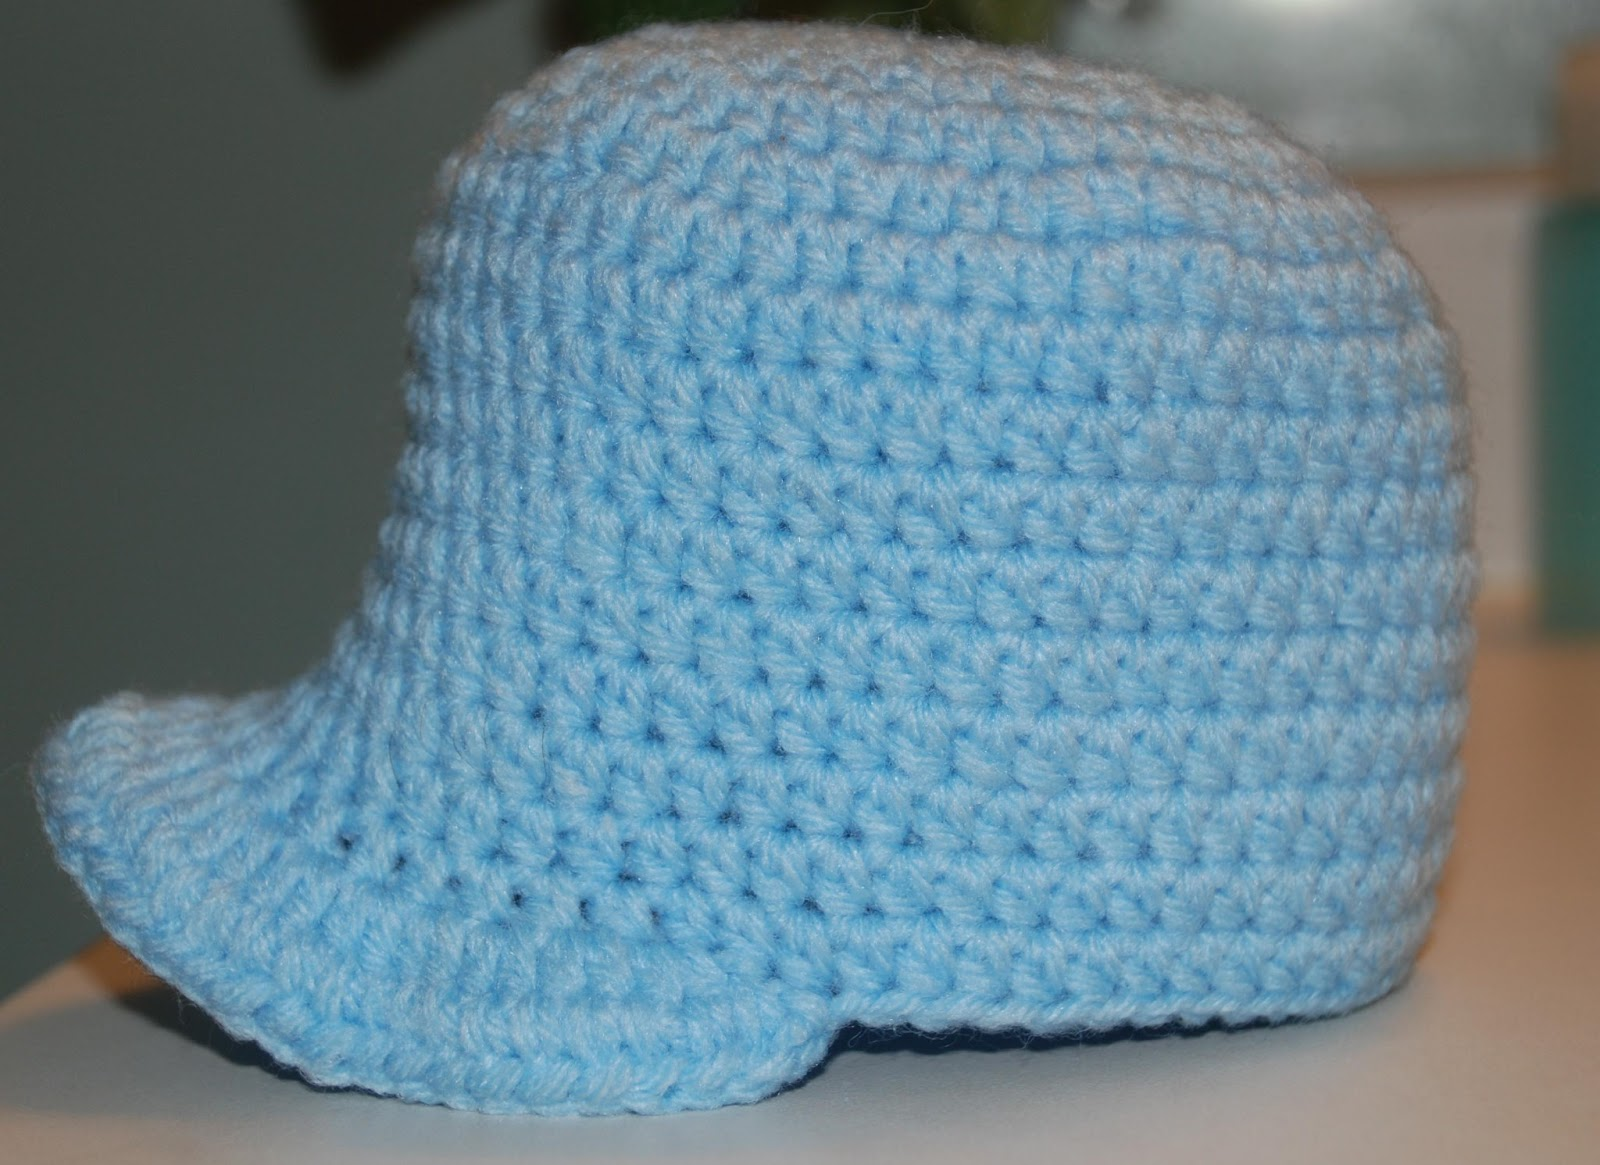 Amys Crochet Creative Creations: Crochet Newborn Baseball Cap